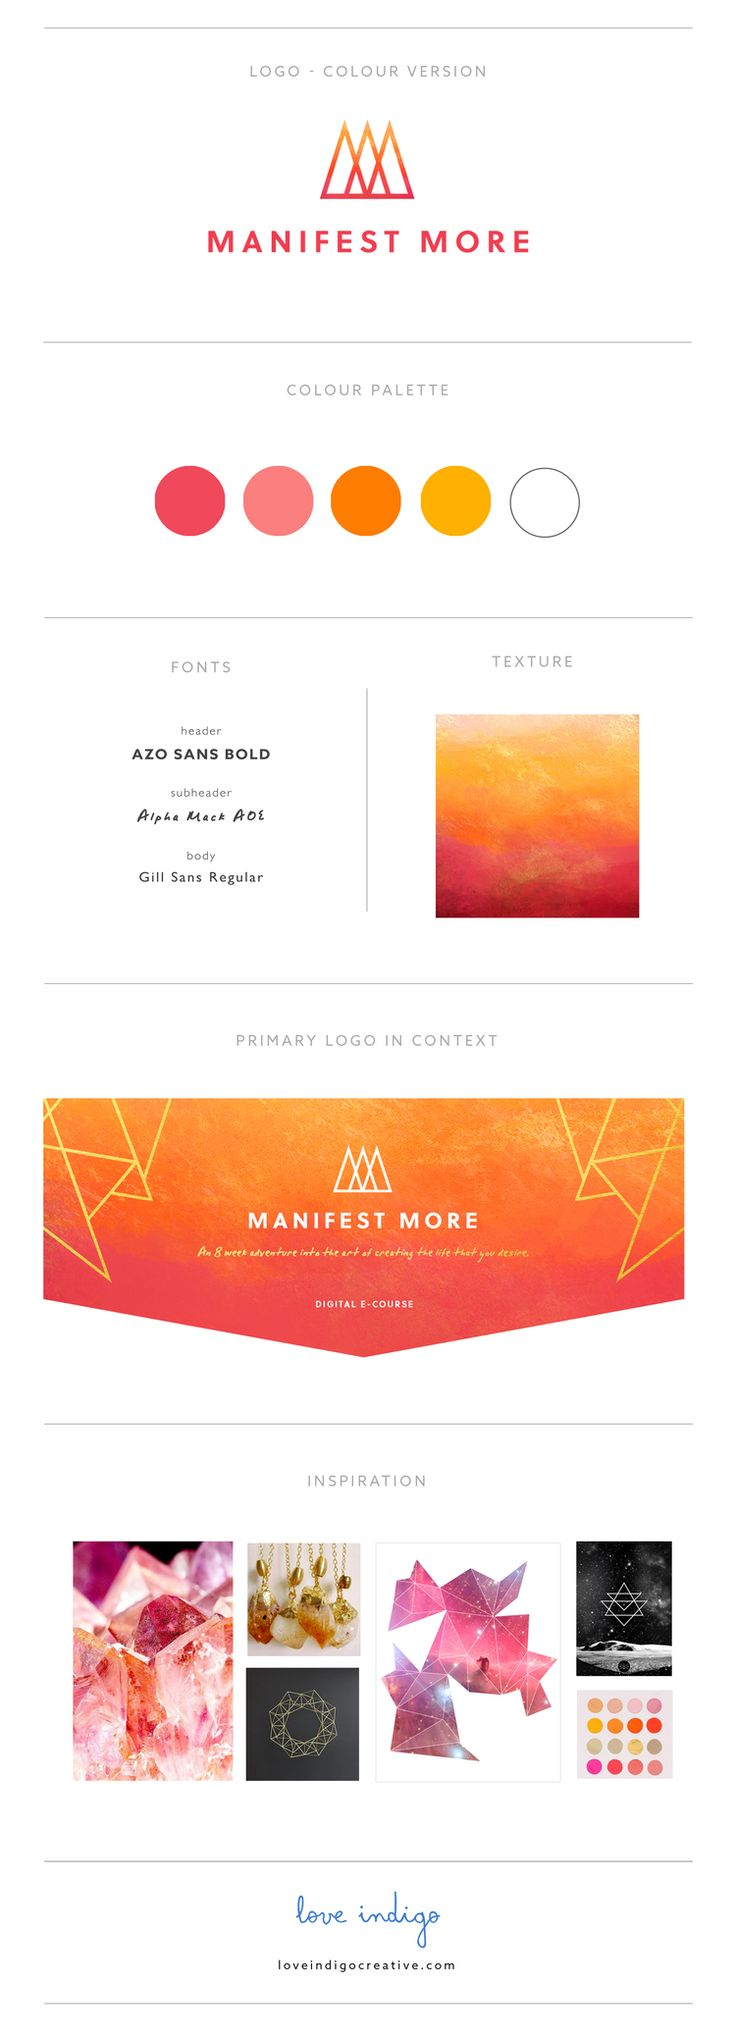 Manifiest More Brand Guide - Love Indigo Creative